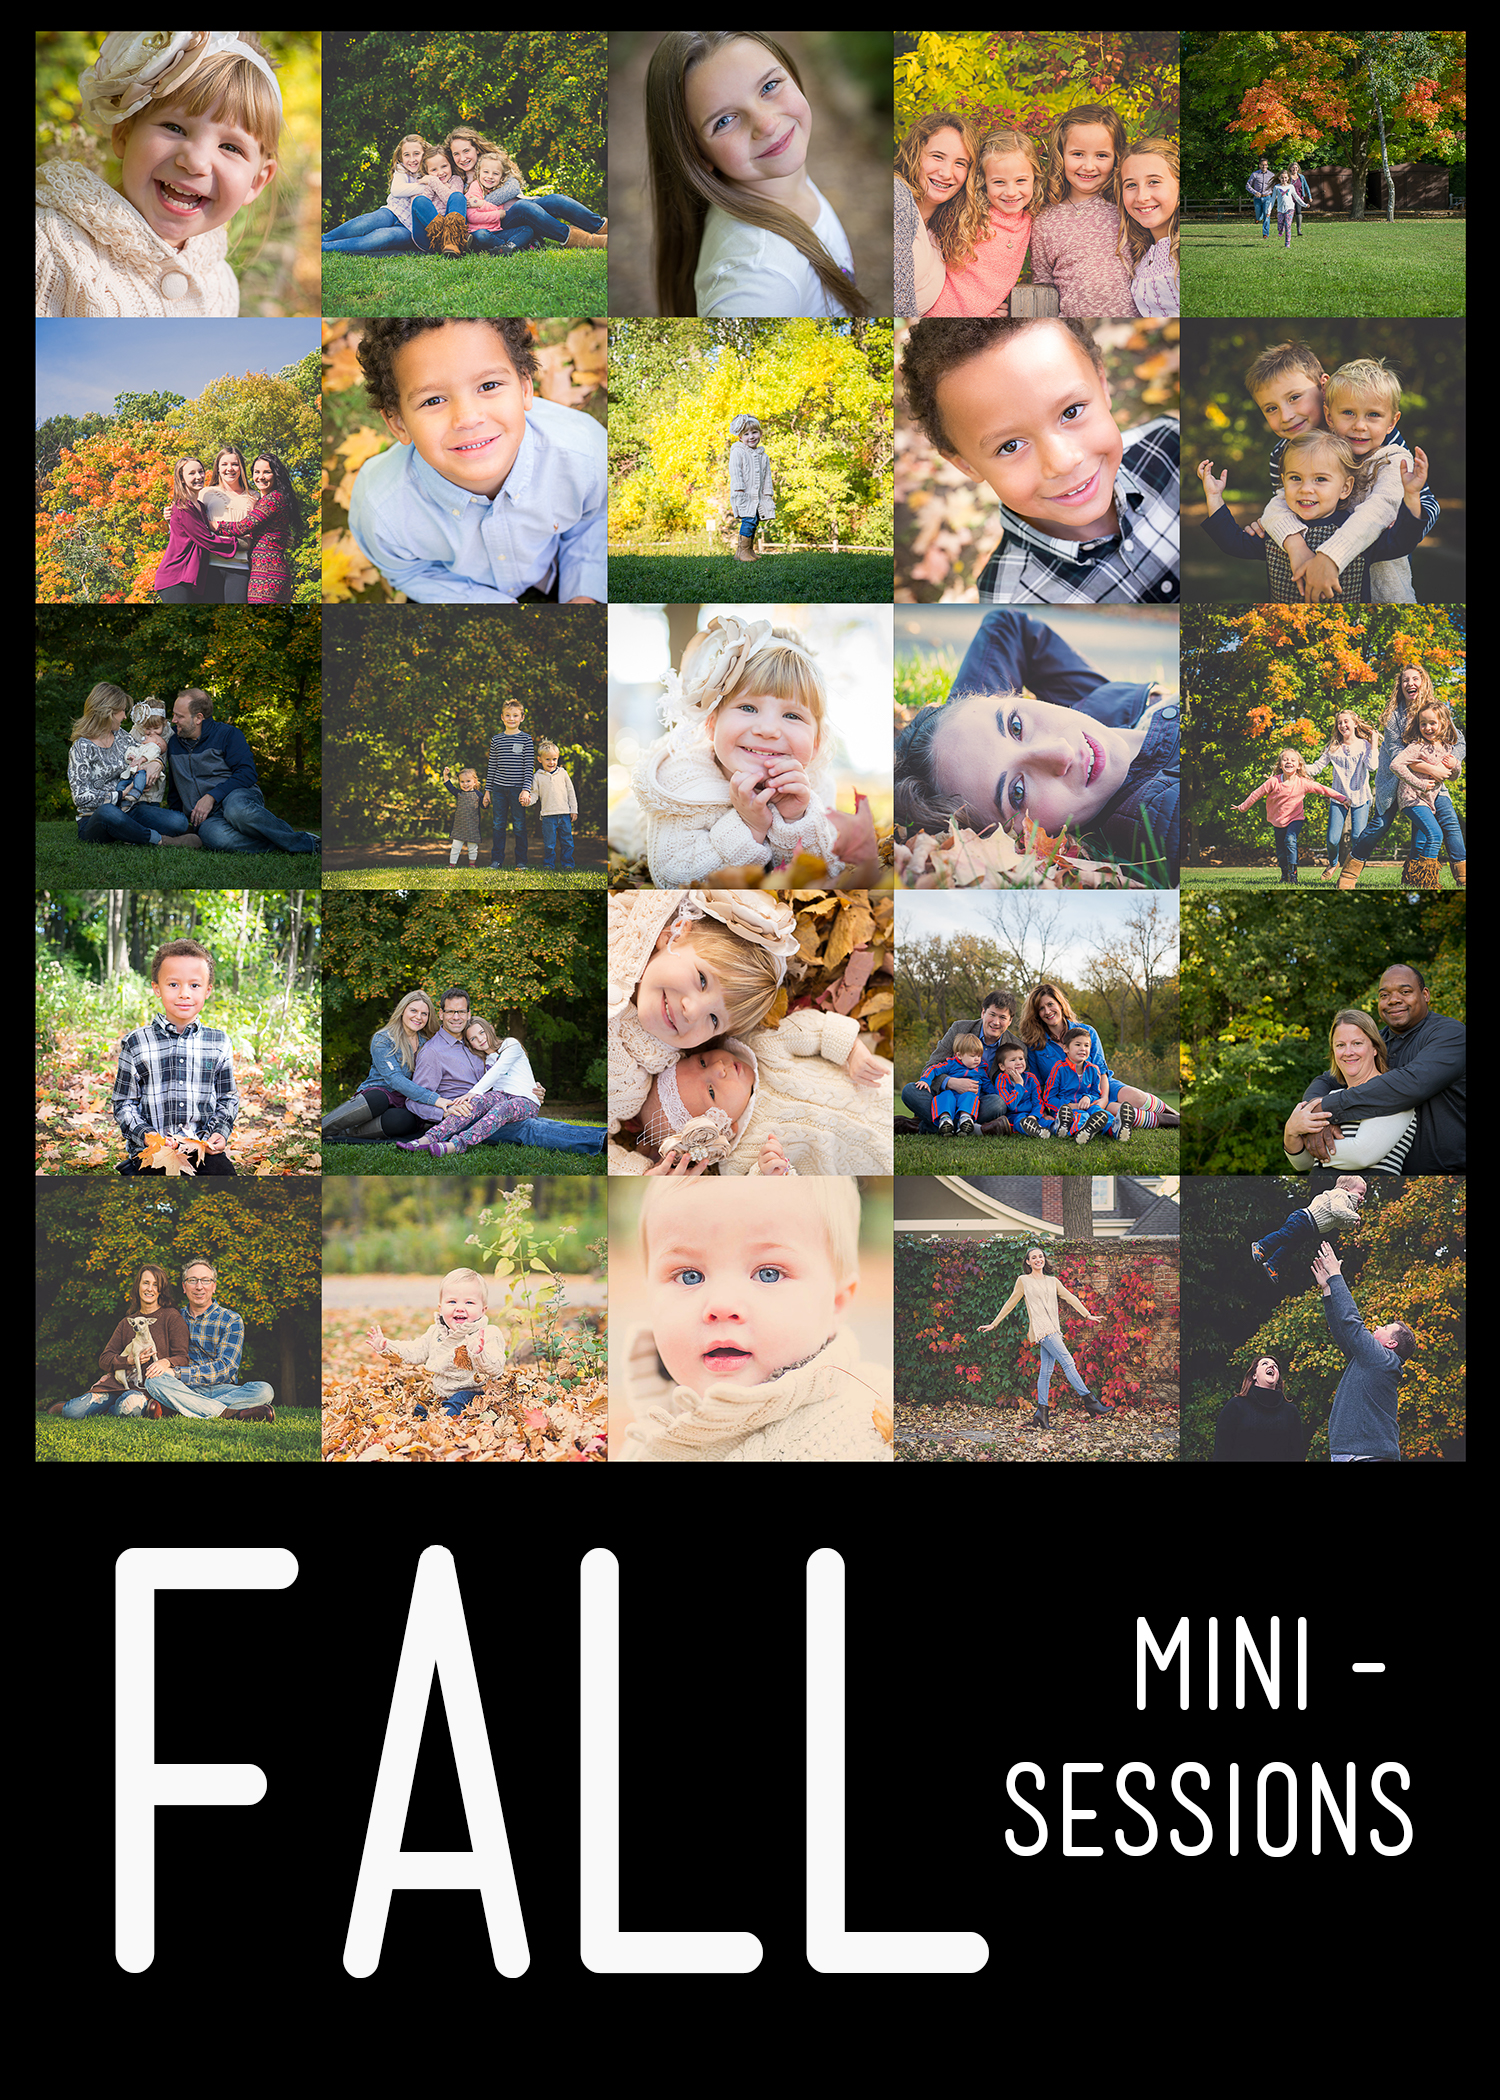 This is ideal for a child/children, teen/tweens, adults, couples, maternity and families.      What:    20 minute Portrait Session      Where:    Specific local location (natural setting) will be communicated directly to clients 1-2 weeks prior to the session.      When:    Saturday, October 8th  Sunday, October 9th  Monday, October 10th      Appt times:    Time slots booking every 30 minutes from 3:00pm until sunset (approximately 6:00pm).      Cost:    $200 plus tax      Includes:    Portrait session, 6 digital images with print release and one 8x12 professional print of your choice from the session in an 11x14 white mat.     To express interest or book, please email  jennifer-erin@live.com  with the date and time of interest.  Time slots are booked first come, however I will try to accommodate all requested time or a time close to it if possible.       Mini Portrait Sessions are great in providing a limited amount of images with a professional print of your choice from the session.  If you're looking for a larger amount of images or for a session at a location of your choice, please consider booking a Regular Portrait Session.      Regular Portrait Session information and pricing can be found here:  http://www.jenniferbirney.com/investment/